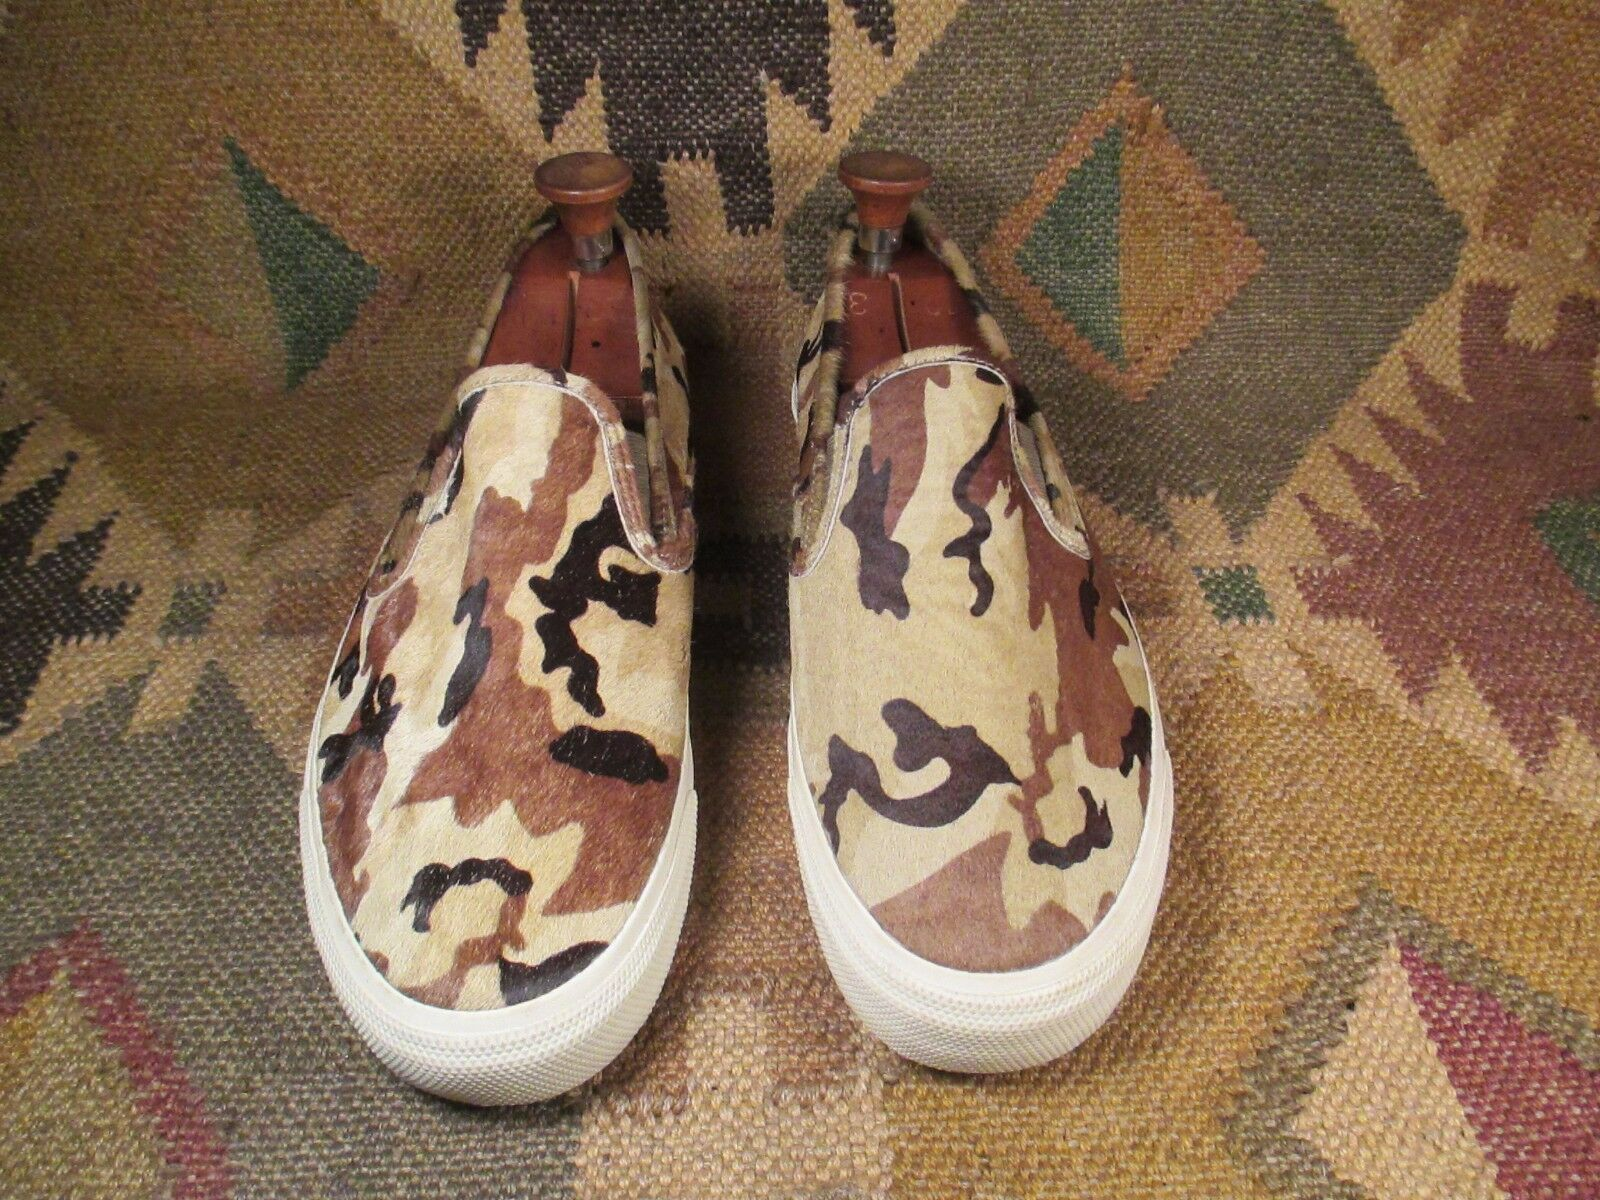 Sperry Top-Sider Jeffrey CVO 3 Tone Camo Fur Cow Hair Leather shoes 11.5M